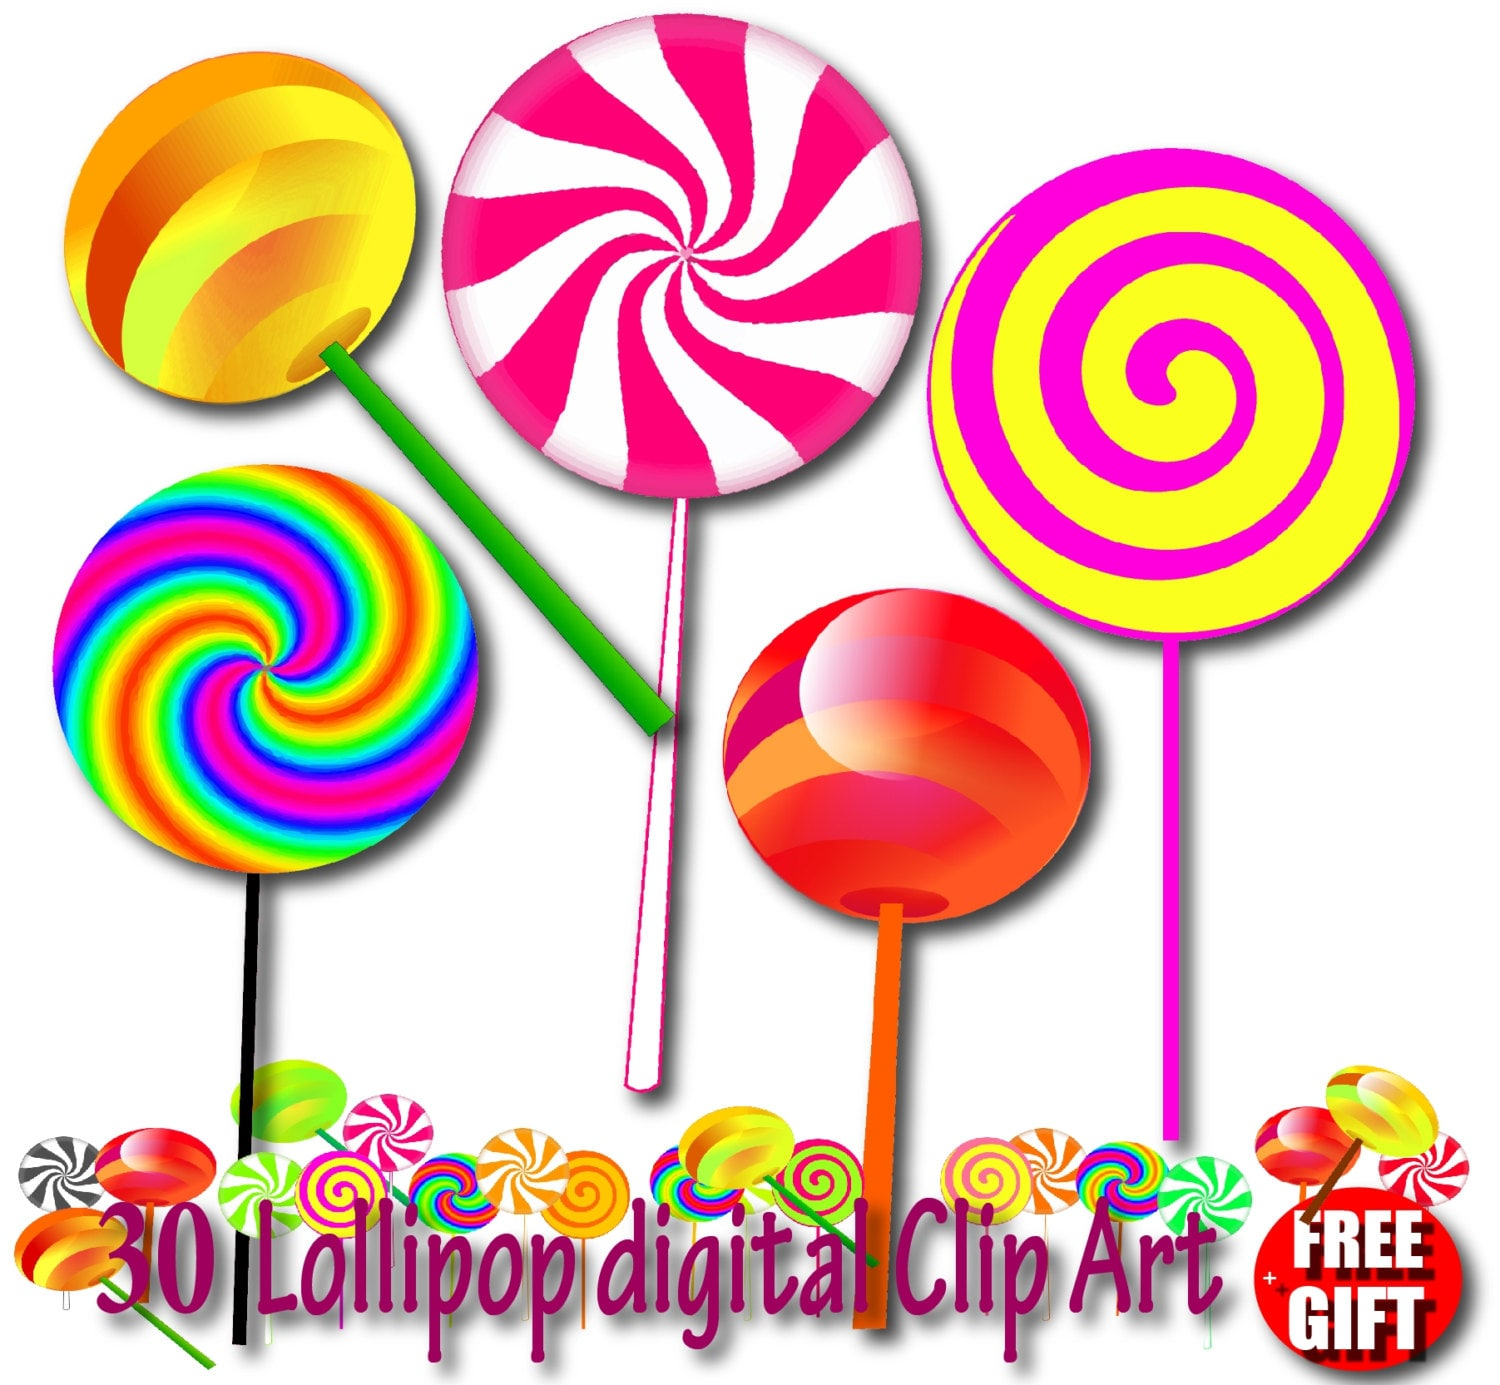 lollipop clipart chocolate lollipop invitation candy lollipops rh etsystudio com lollipop clipart png lollipop clipart free